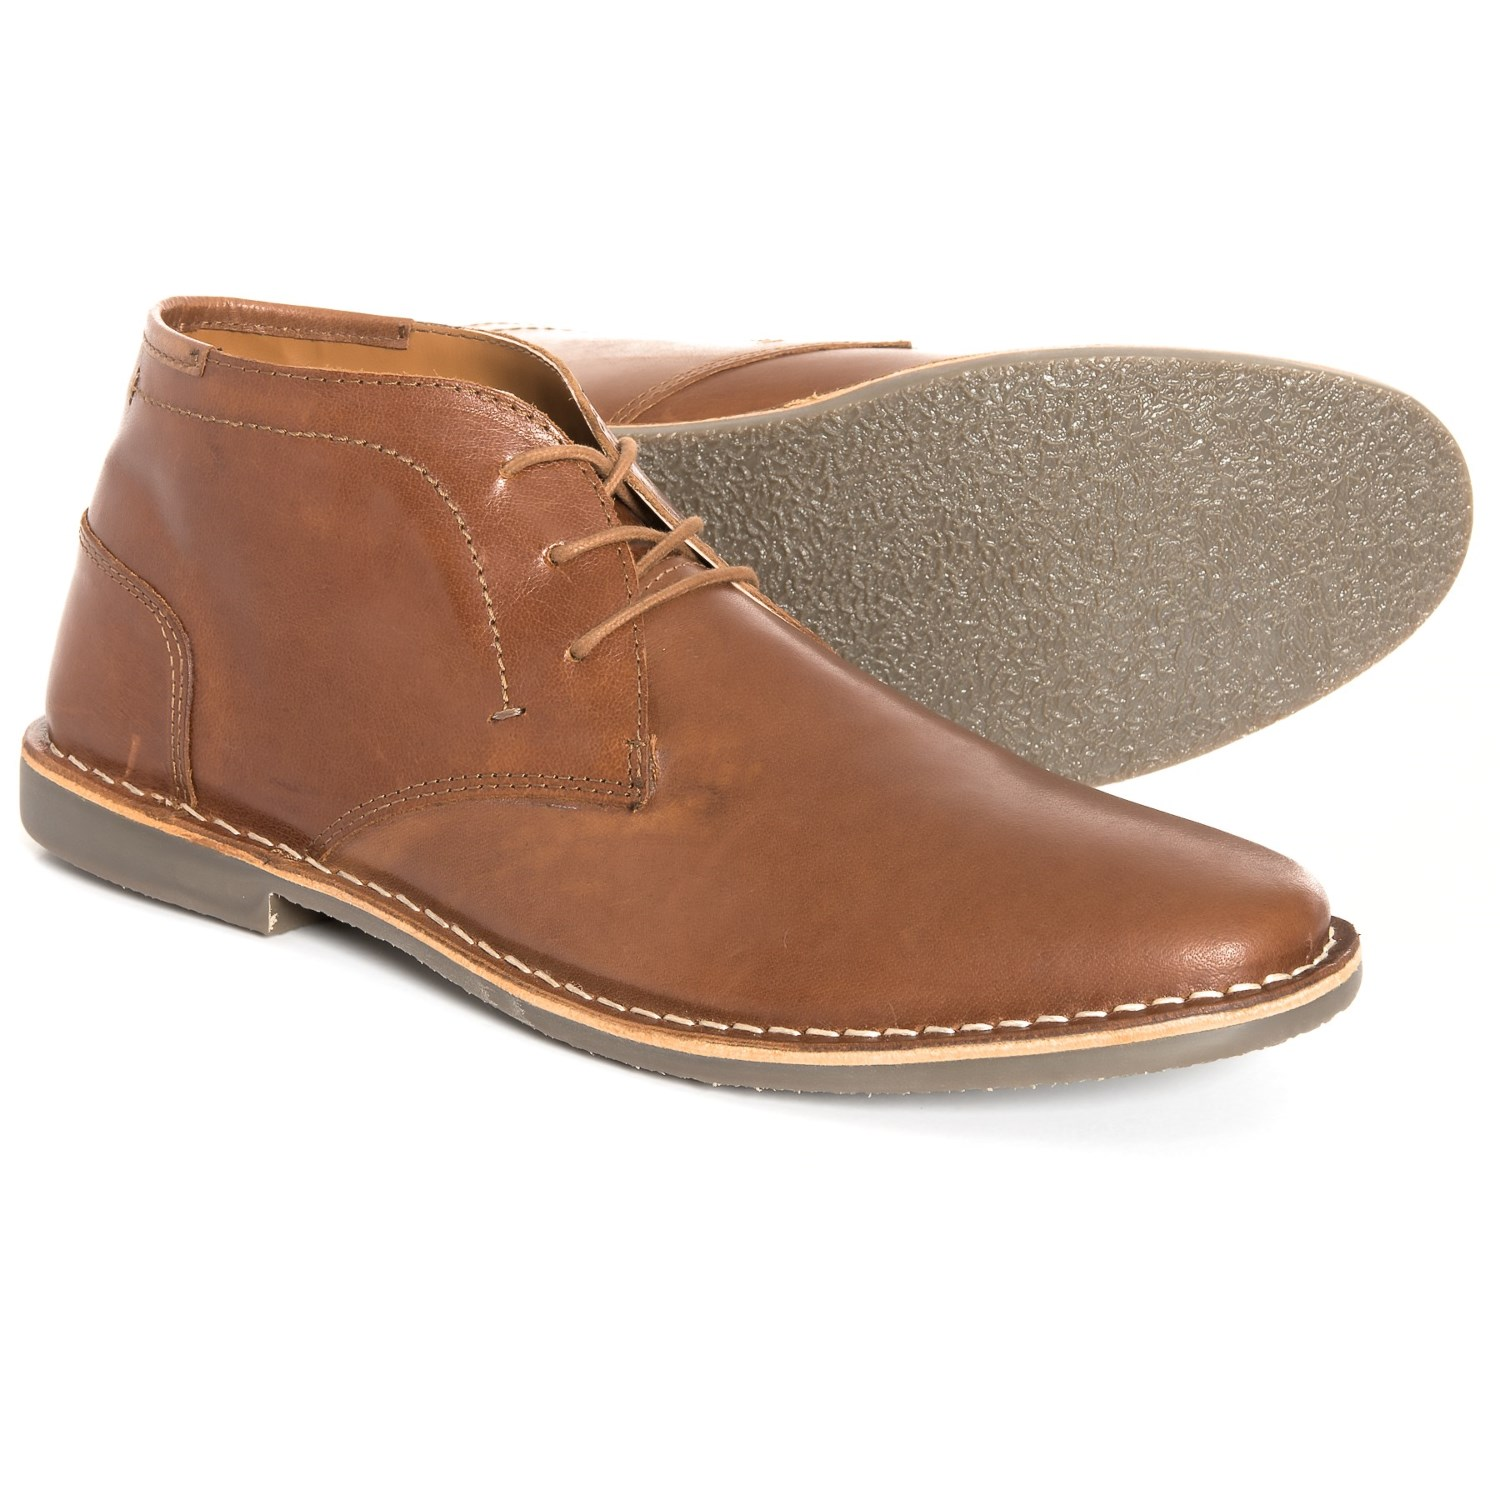 ea22f81bce3 Steve Madden Harken Chukka Boots (For Men) - Save 33%